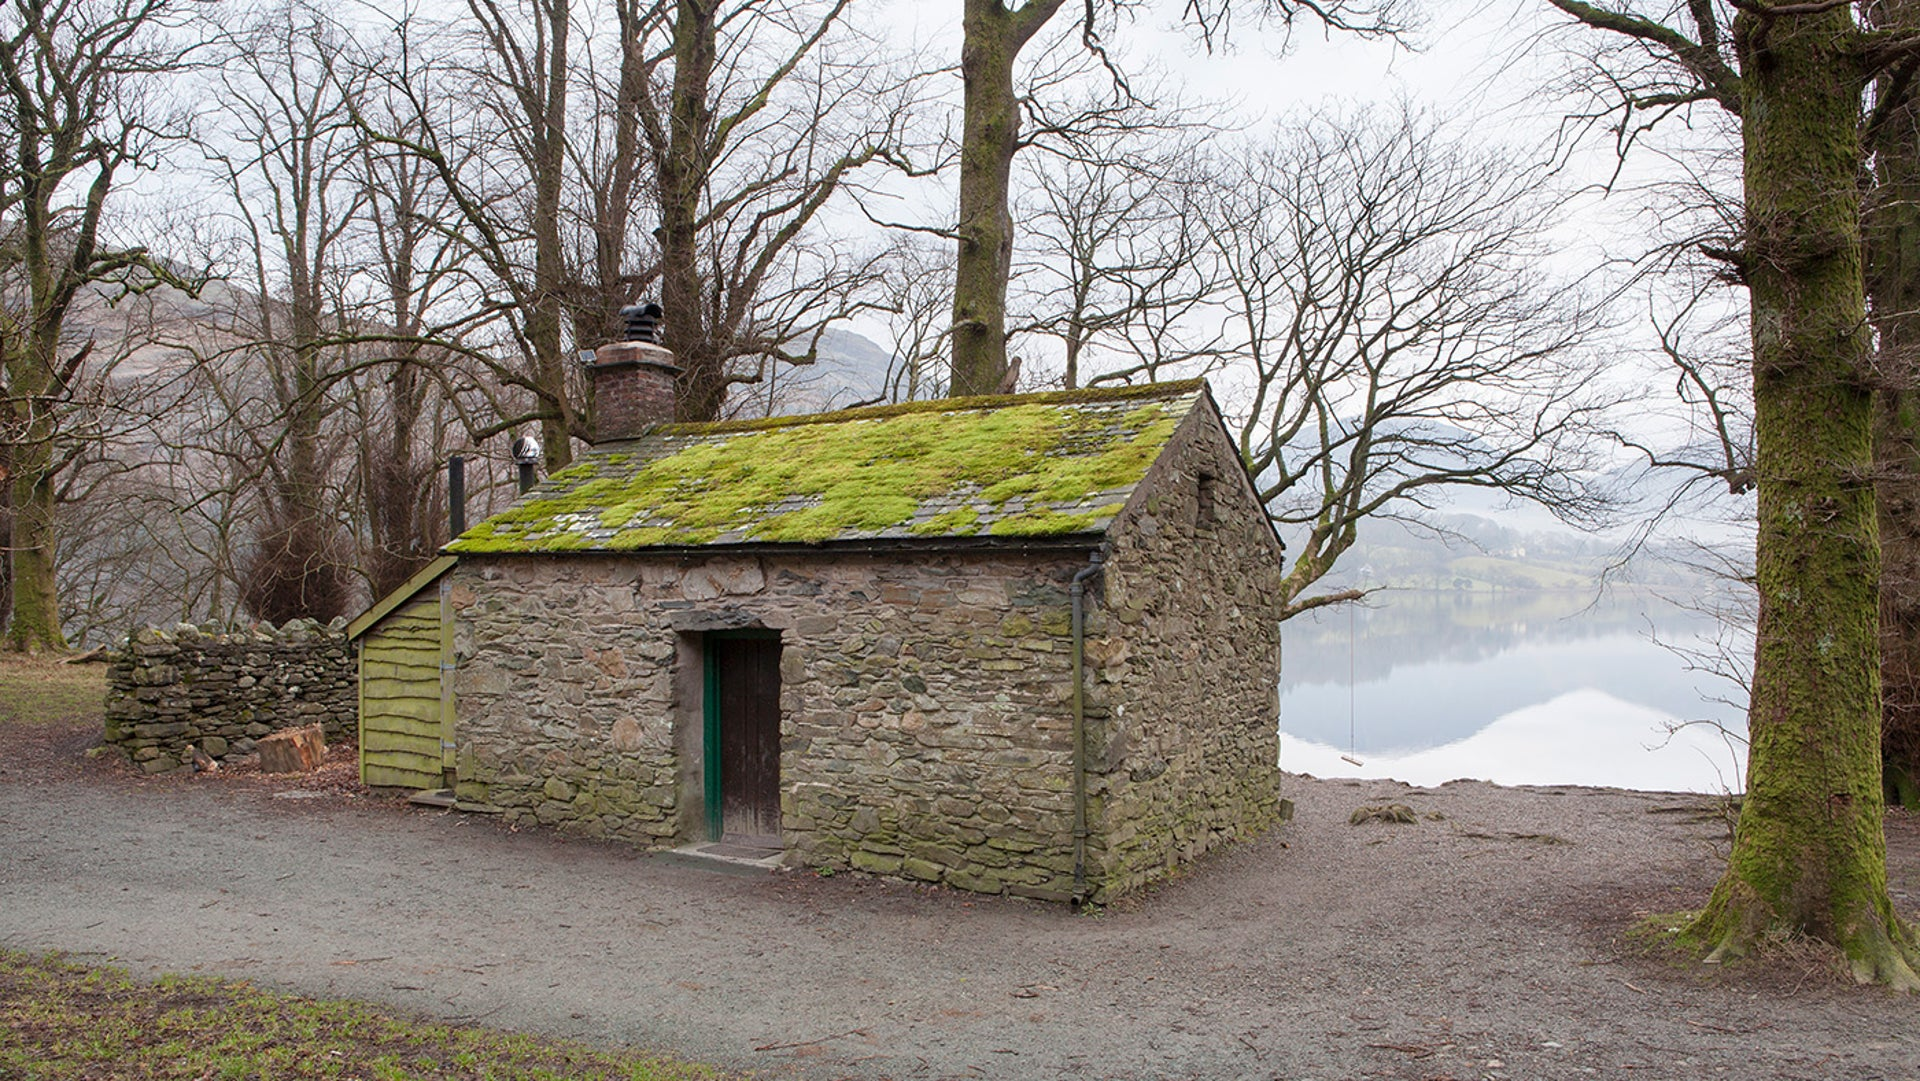 fabulous selection of camping barns, bothy and bunk houses in the Lake District